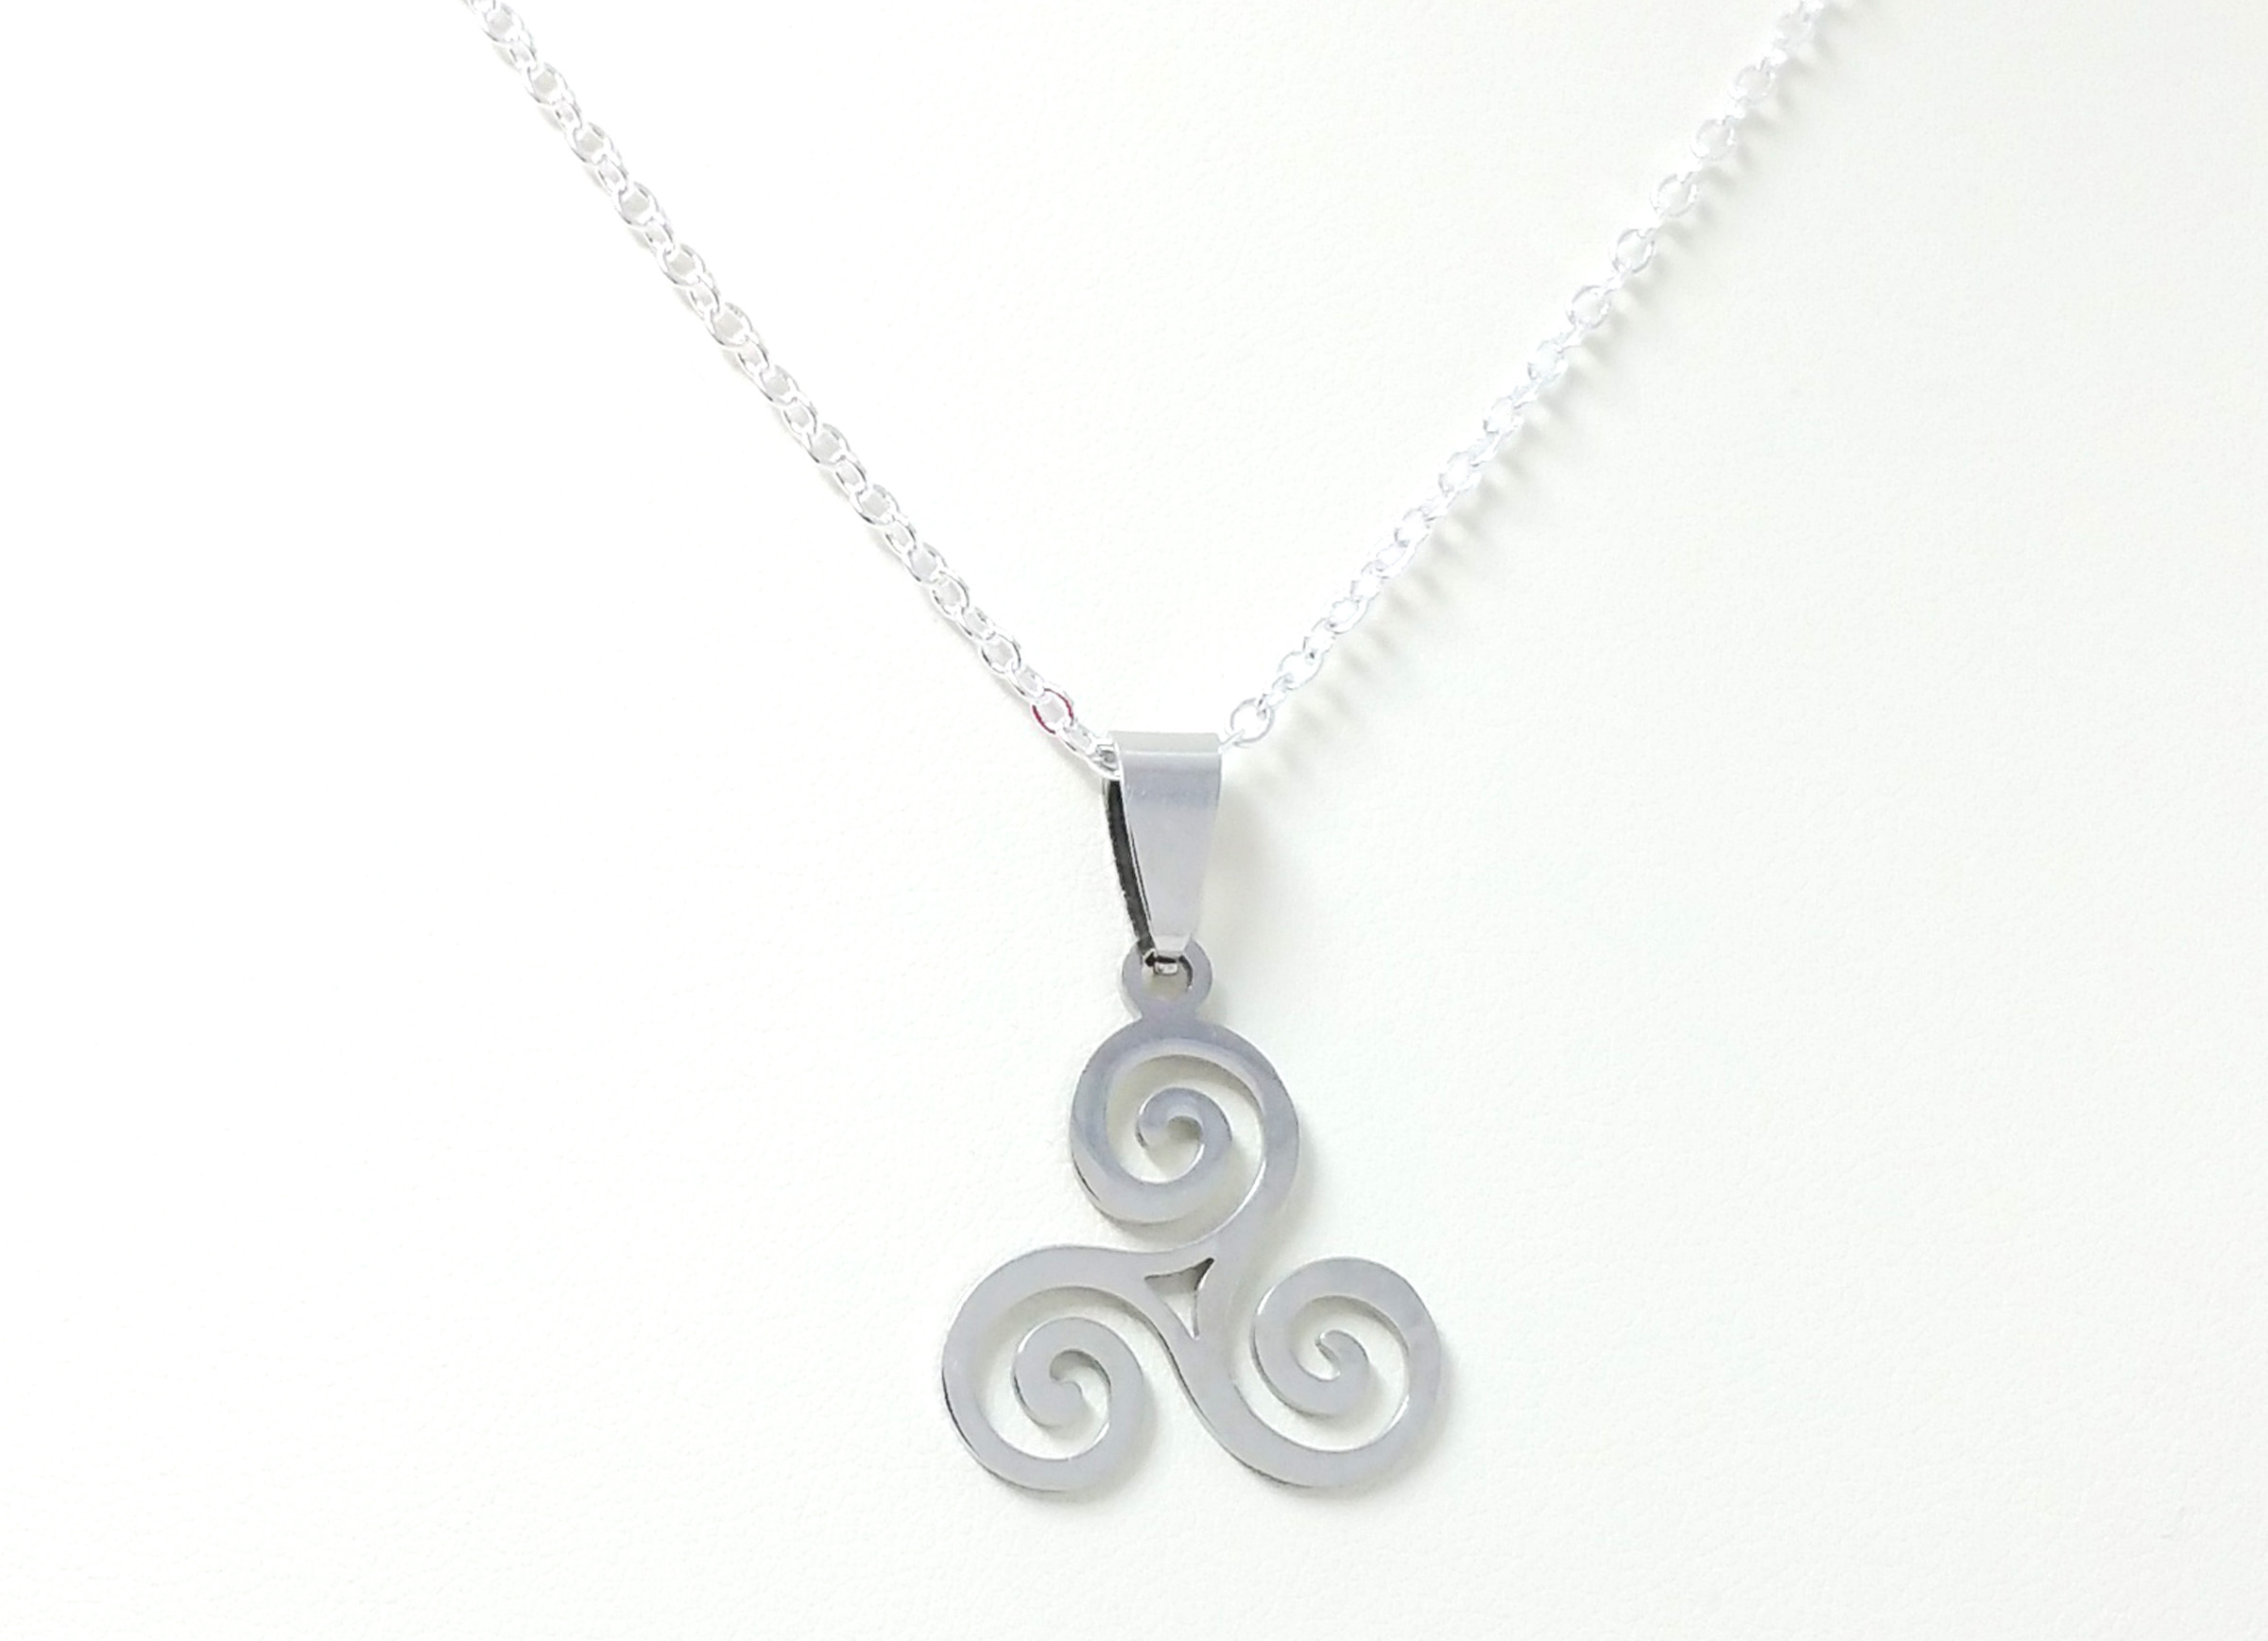 triskelenecklace unisex irish necklace product triskele viking jewelry pendant celtic